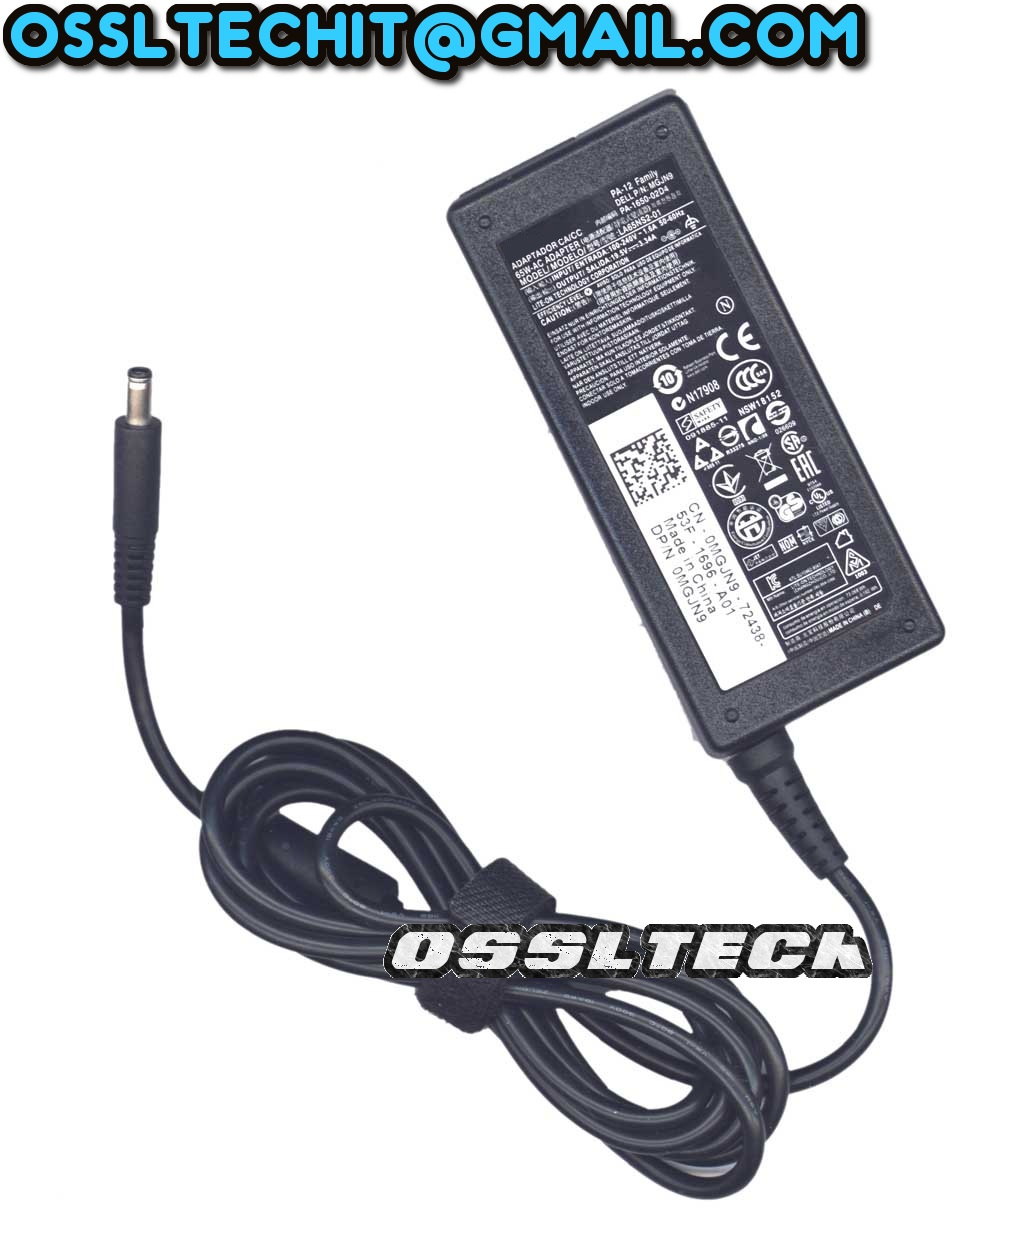 DELL 19.5V 3.34A 65W 0MGJN9 0G6J41 043NY4 0GG2WG Power Adapter Charger